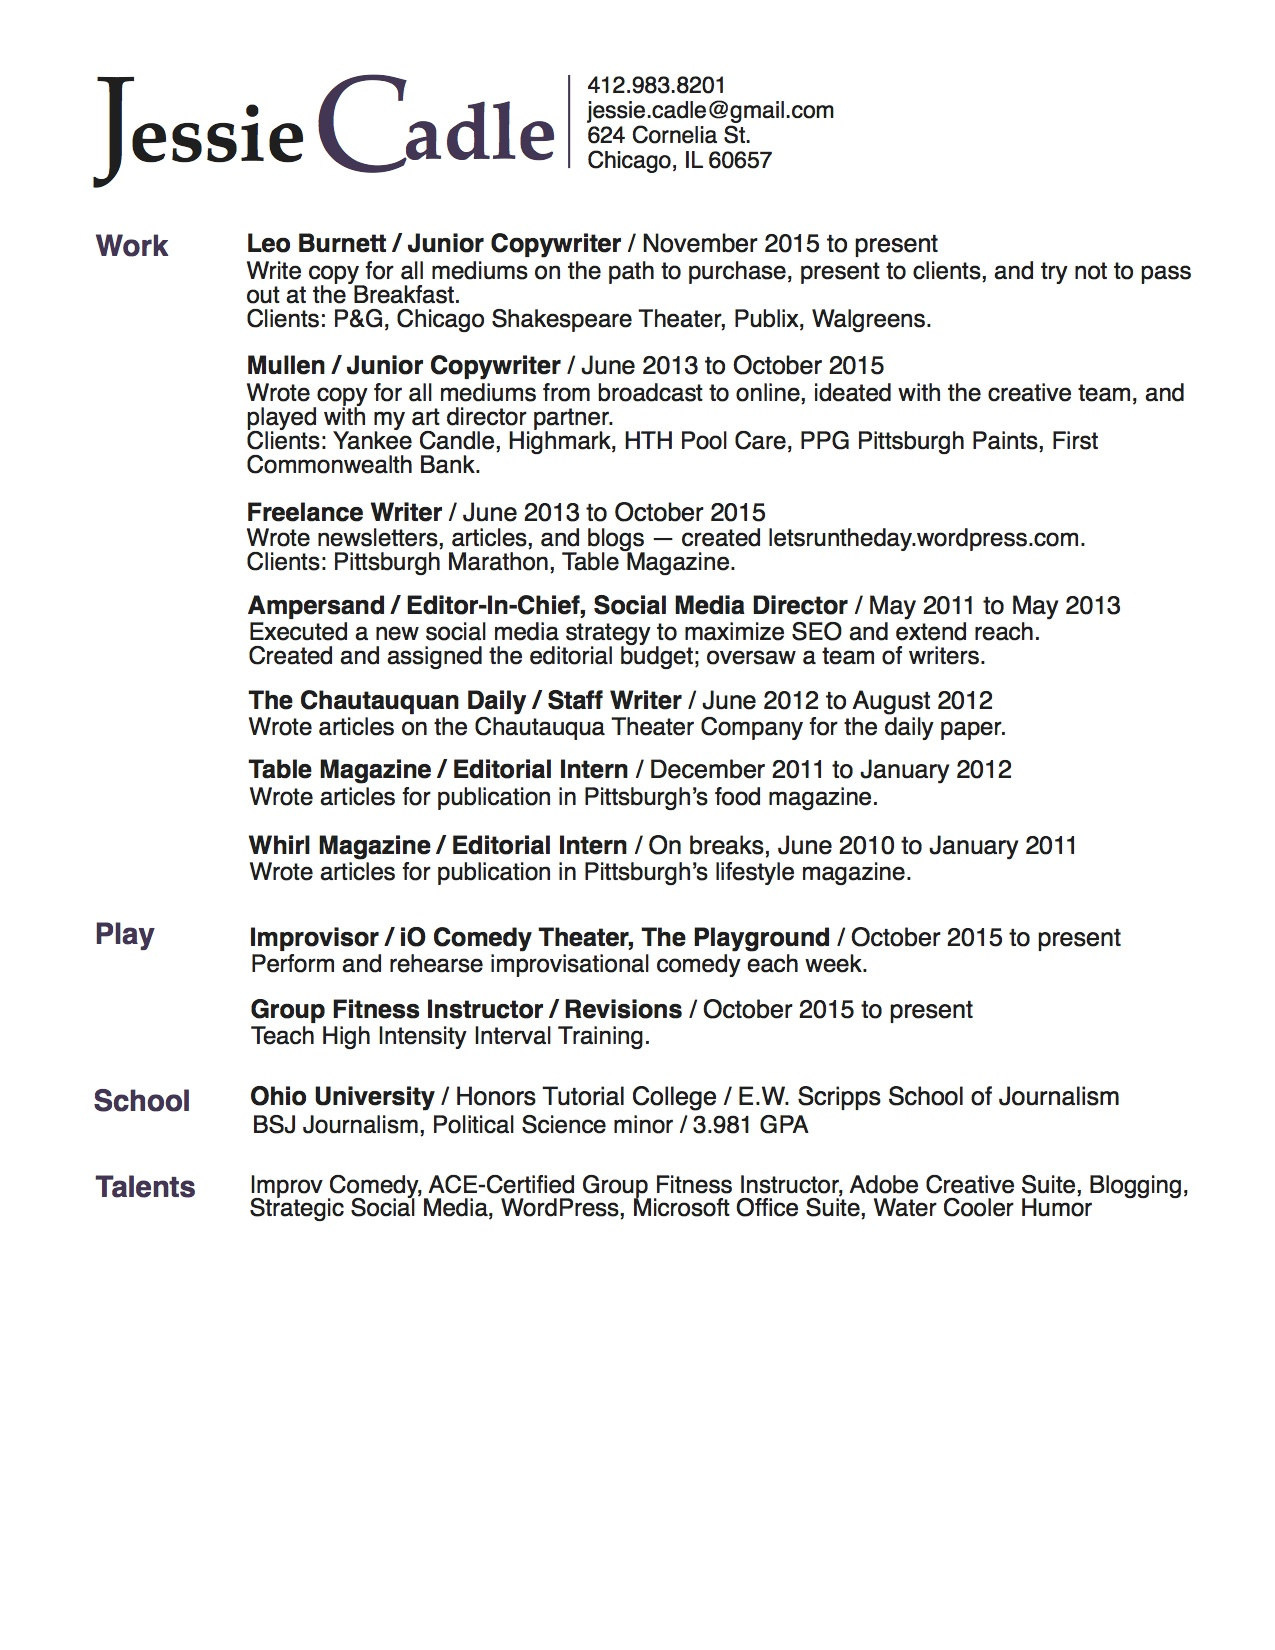 Walgreens Resume nuclear security officer sample resume – Warehouse Specialist Resume